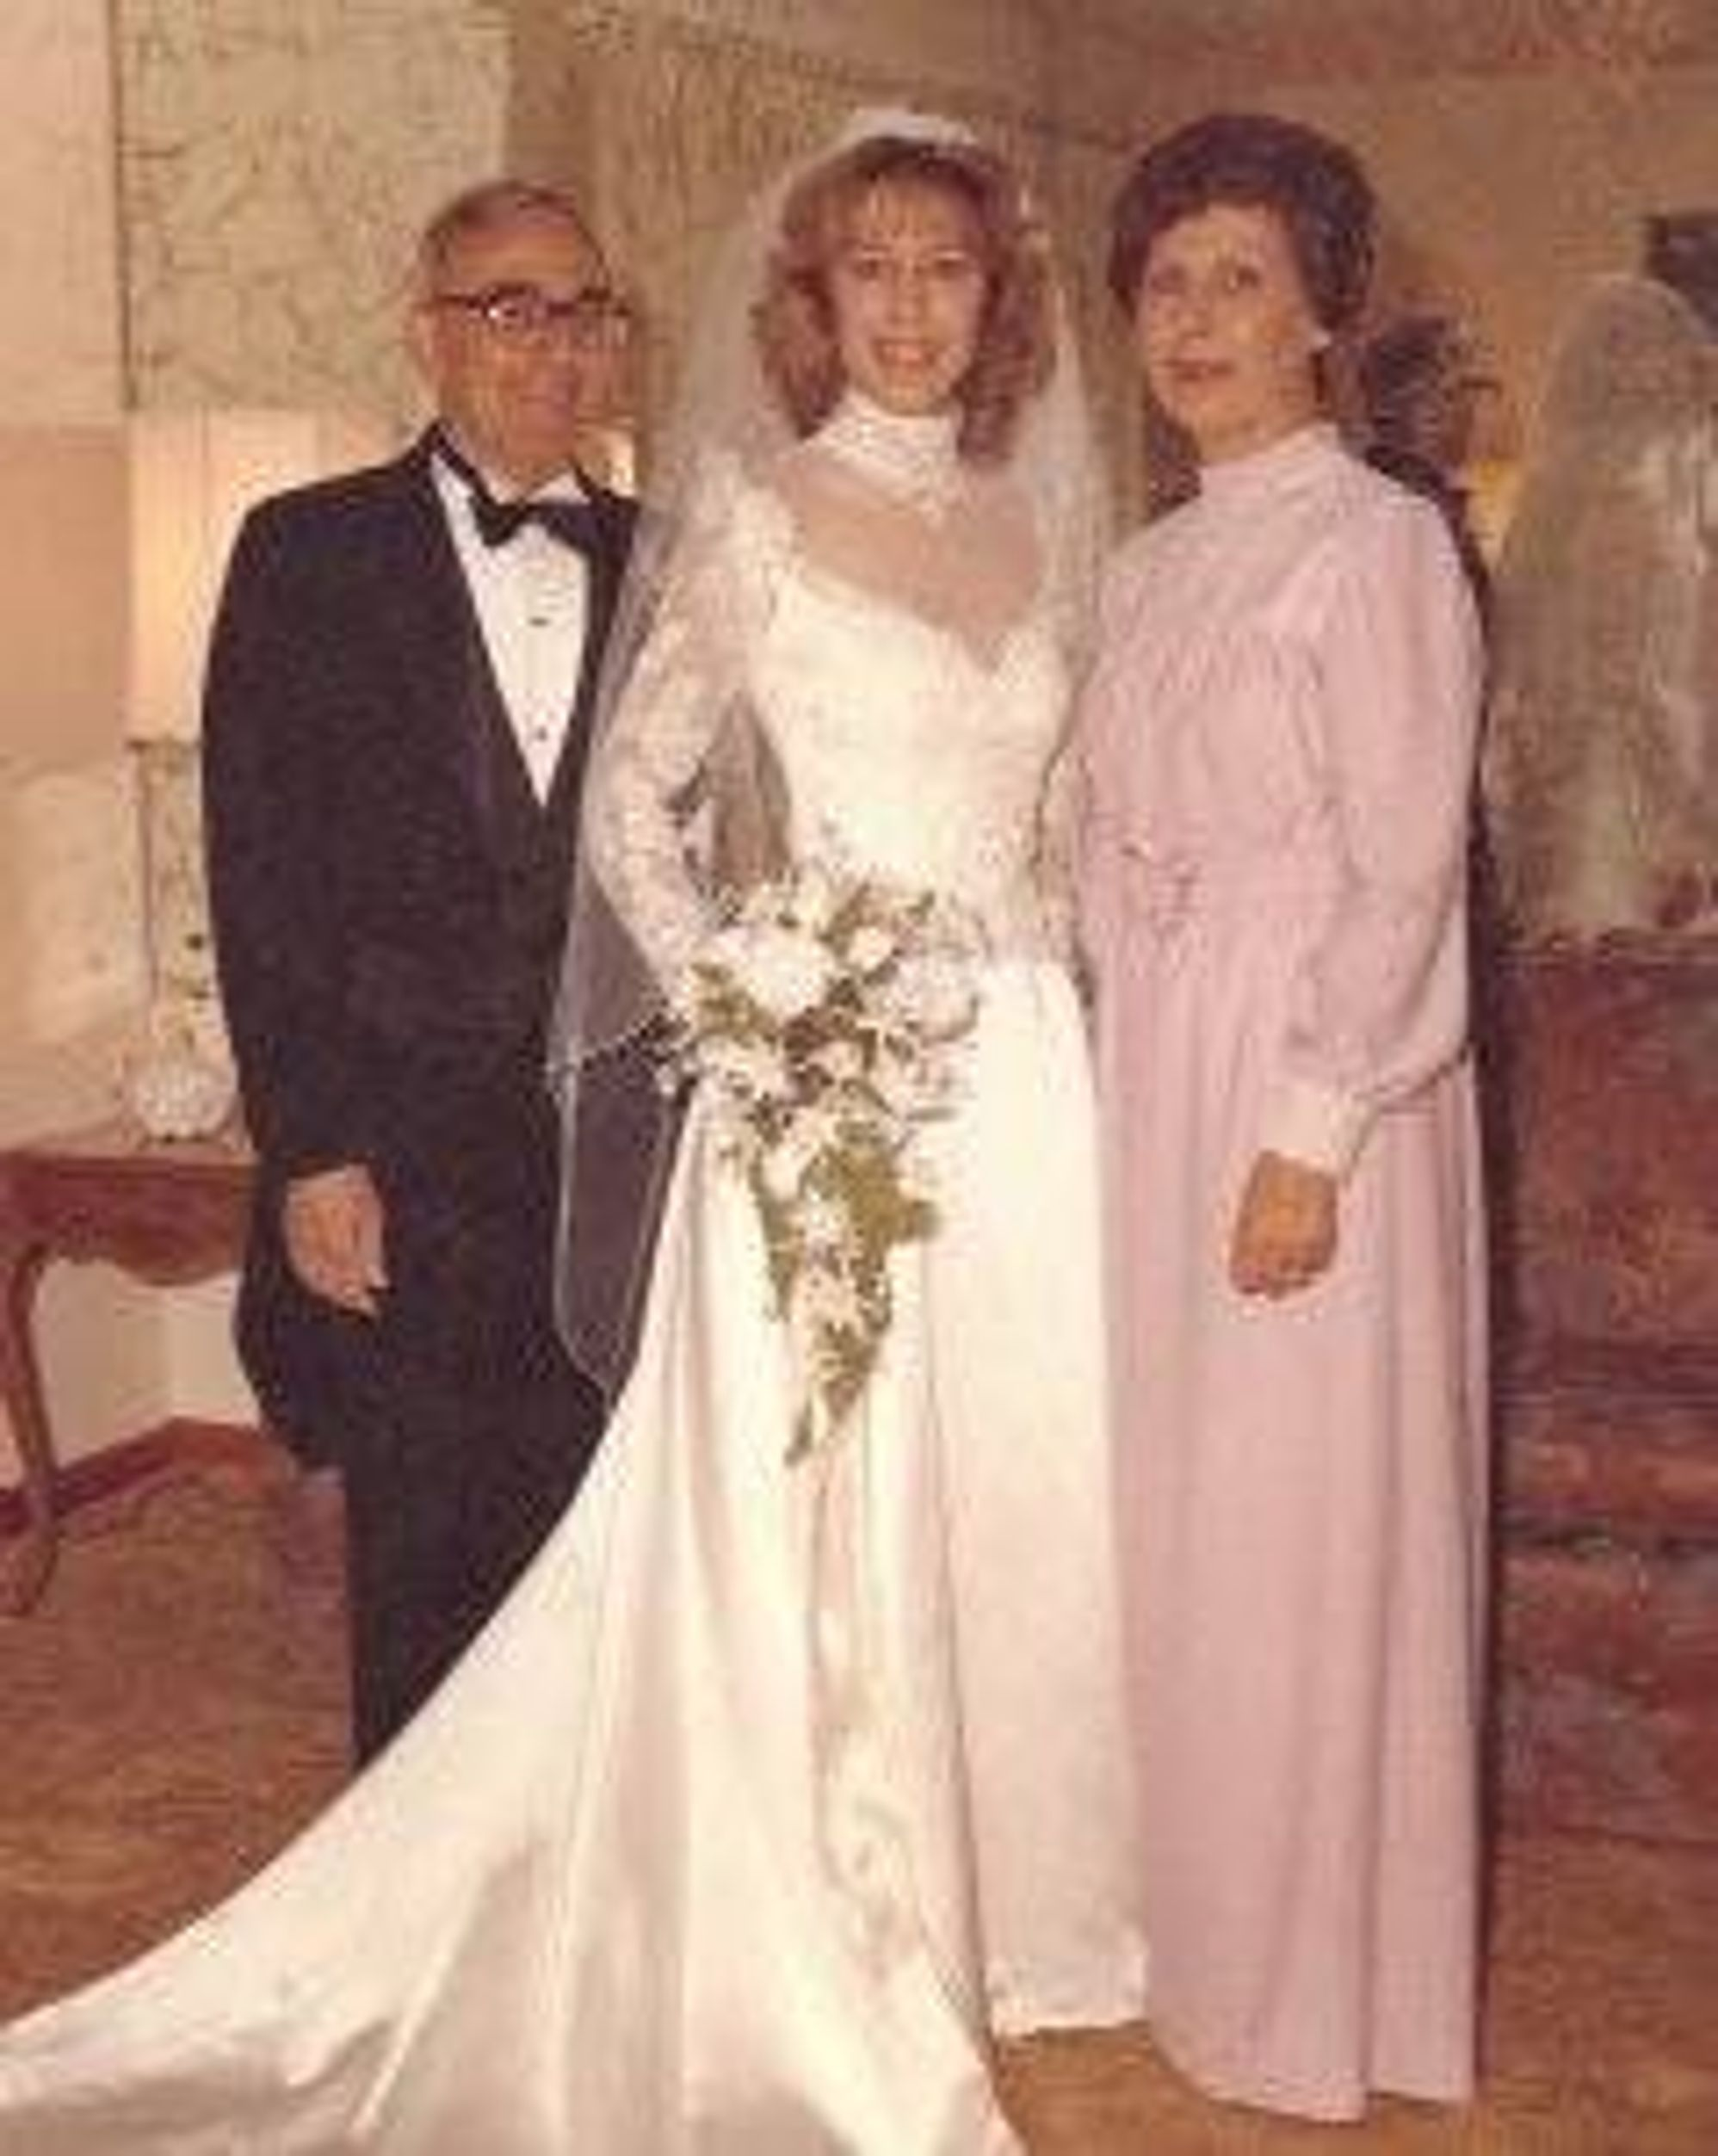 Patricia and her parents on her wedding day